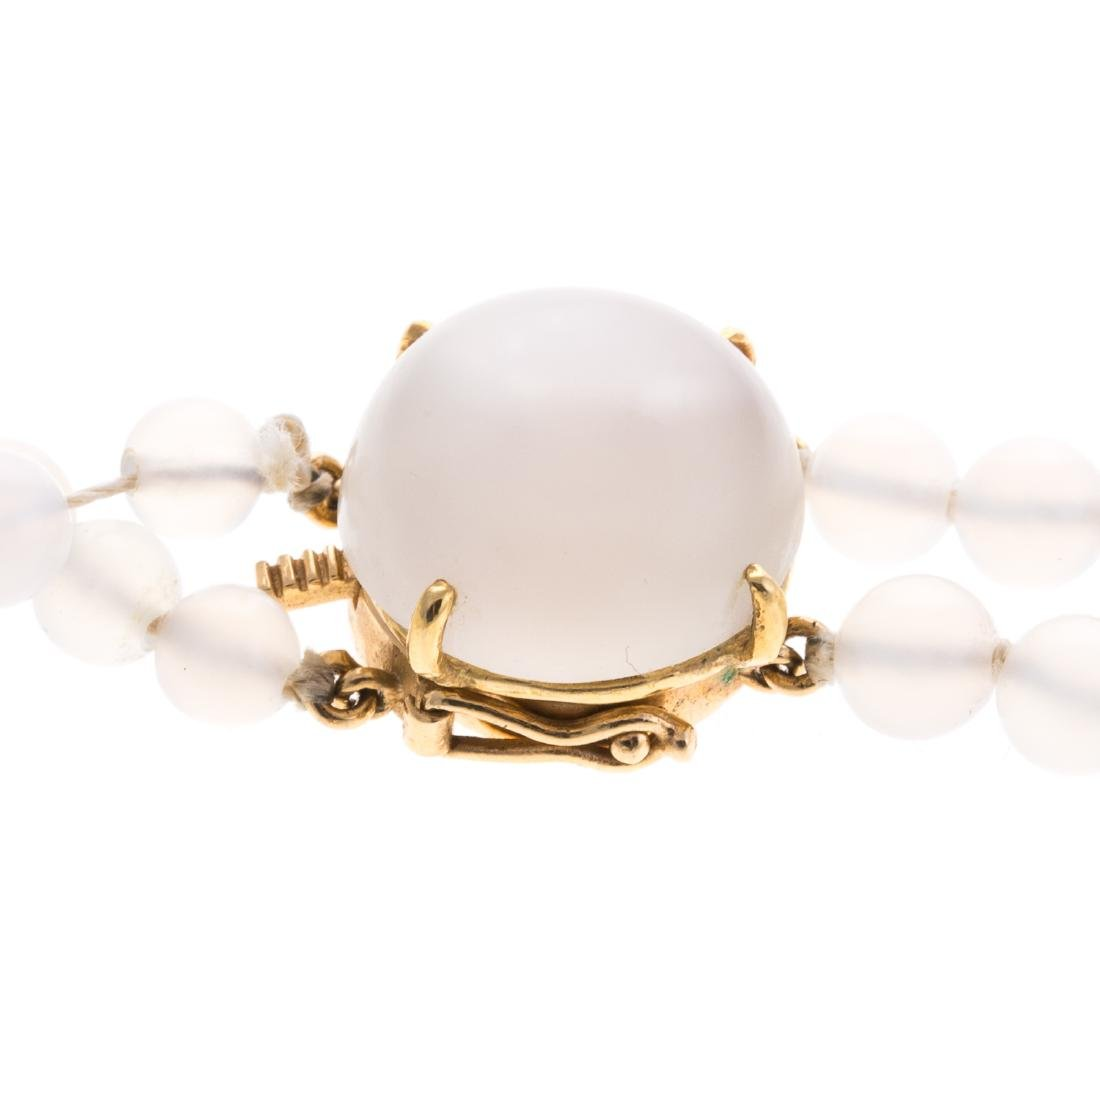 A Convertible 18K Moonstone Pin/Necklace - 4